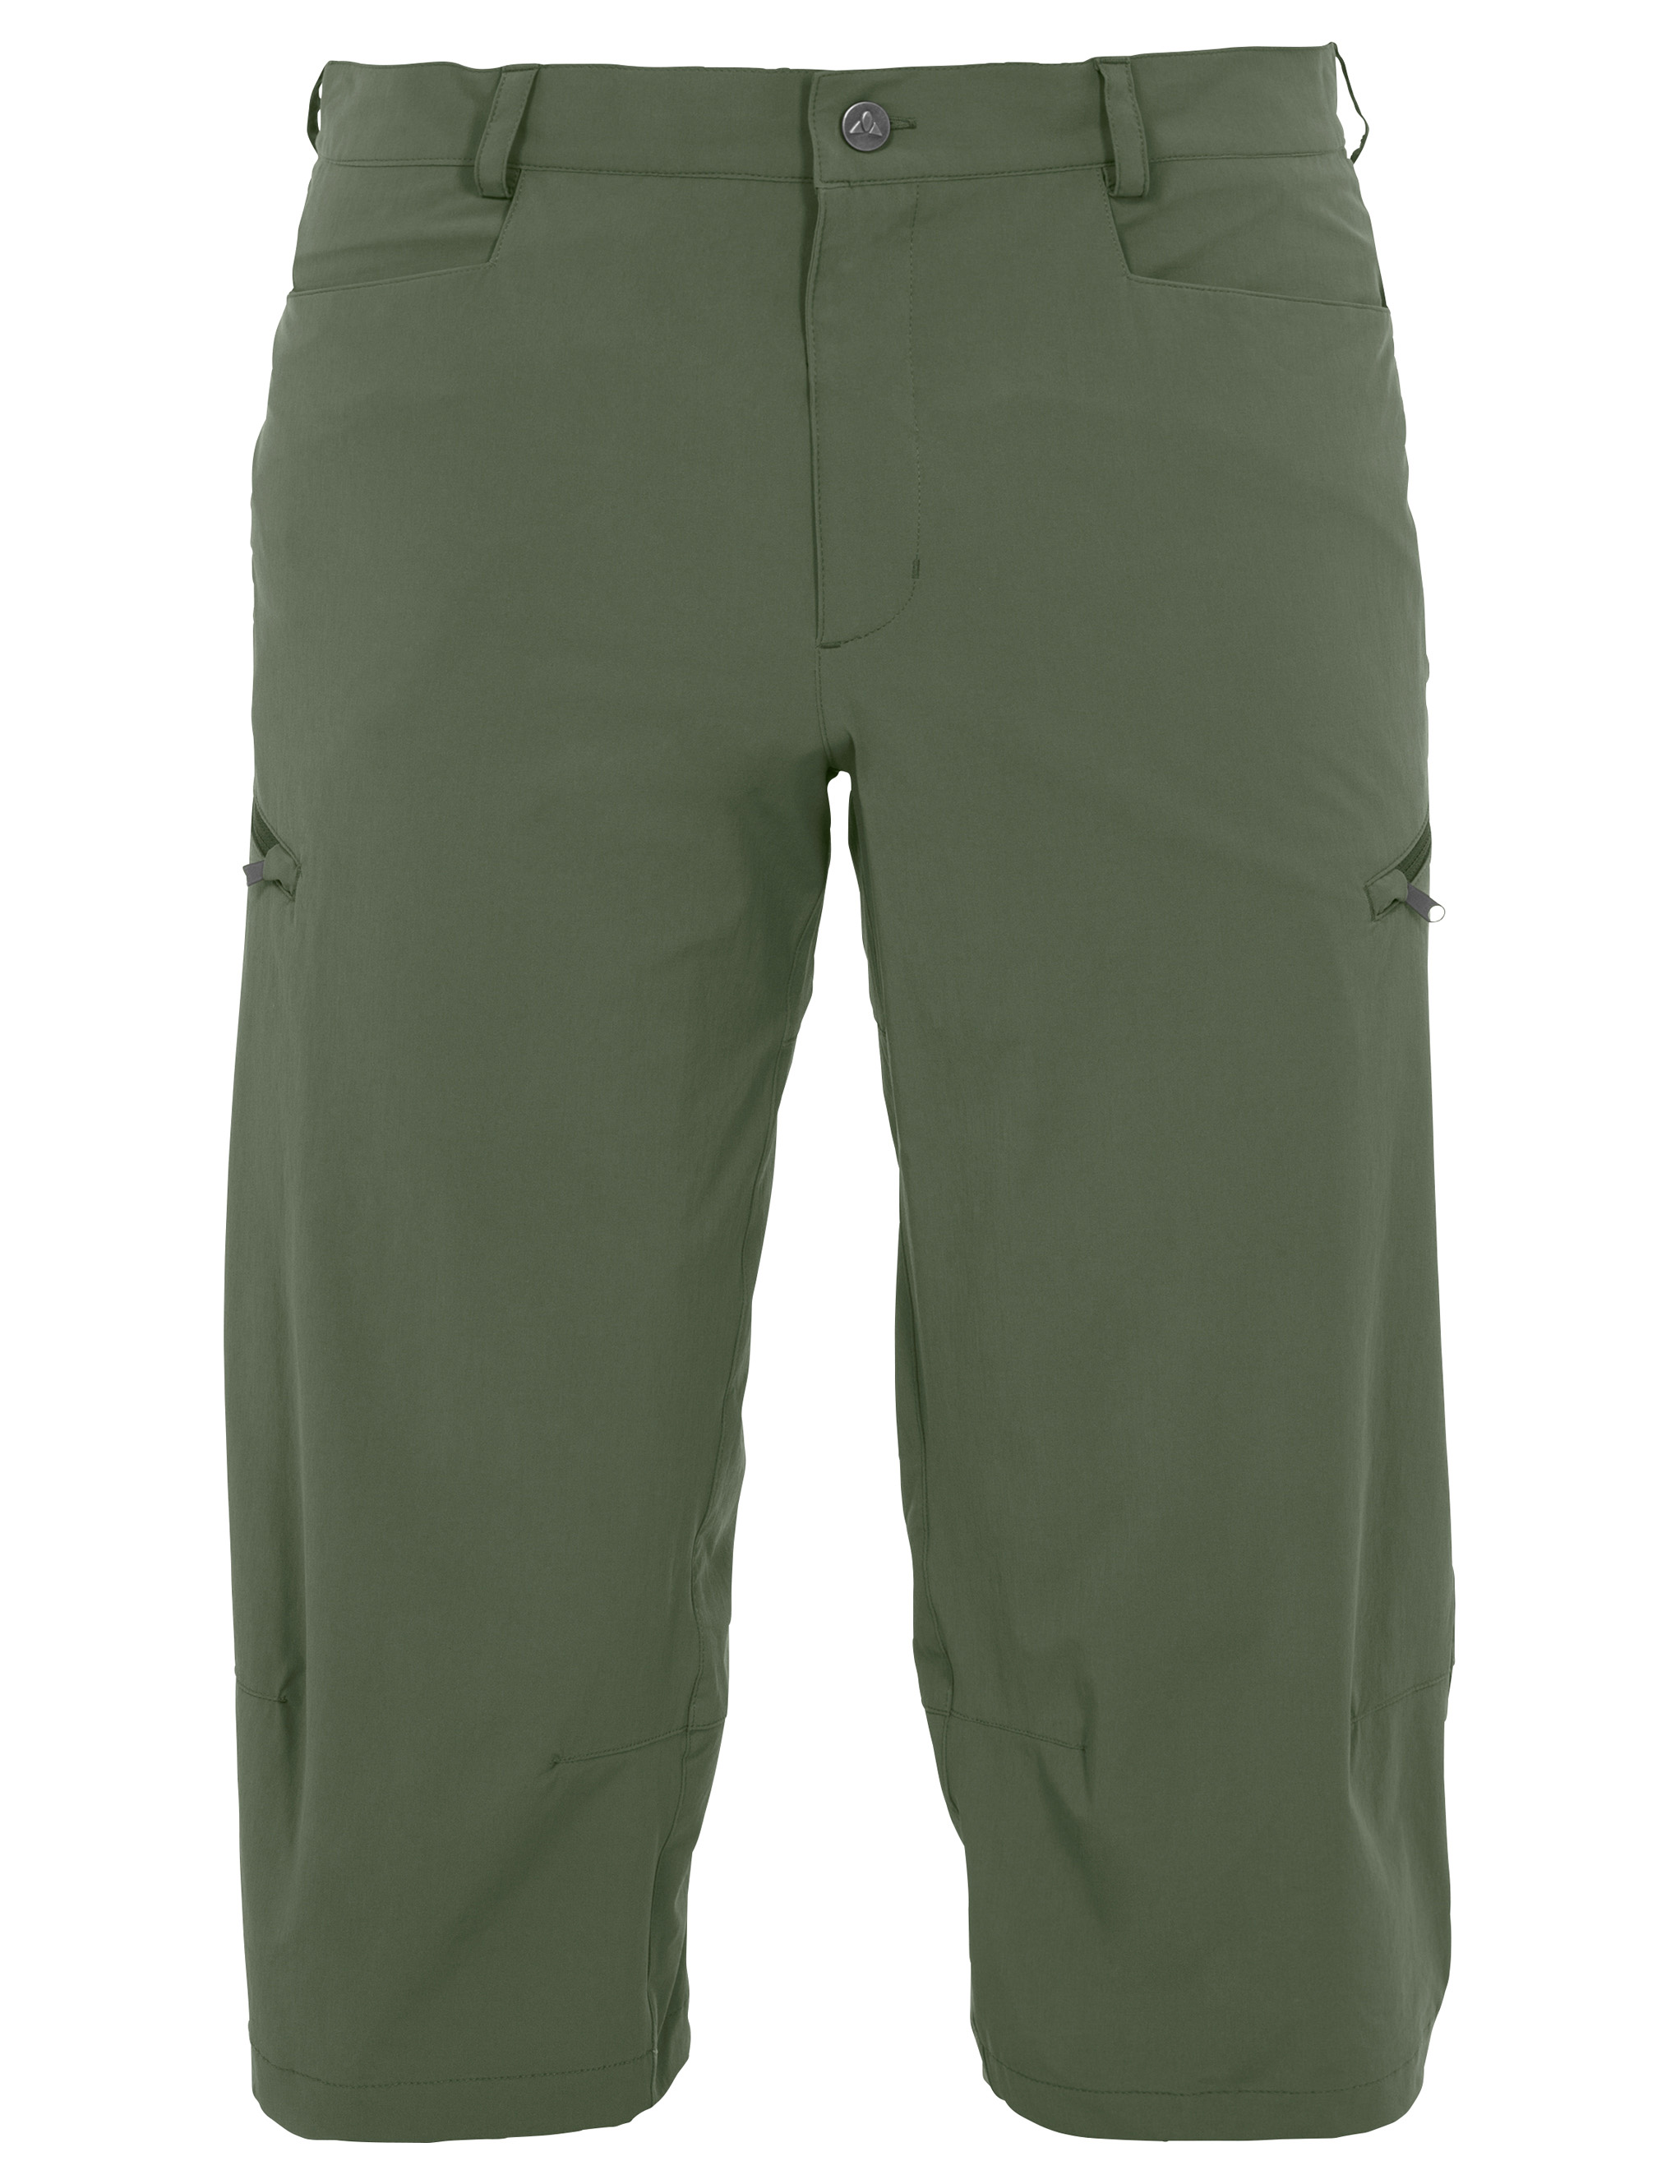 VAUDE Men´s Yaki 3/4 Pants cedar wood Größe L - VAUDE Men´s Yaki 3/4 Pants cedar wood Größe L